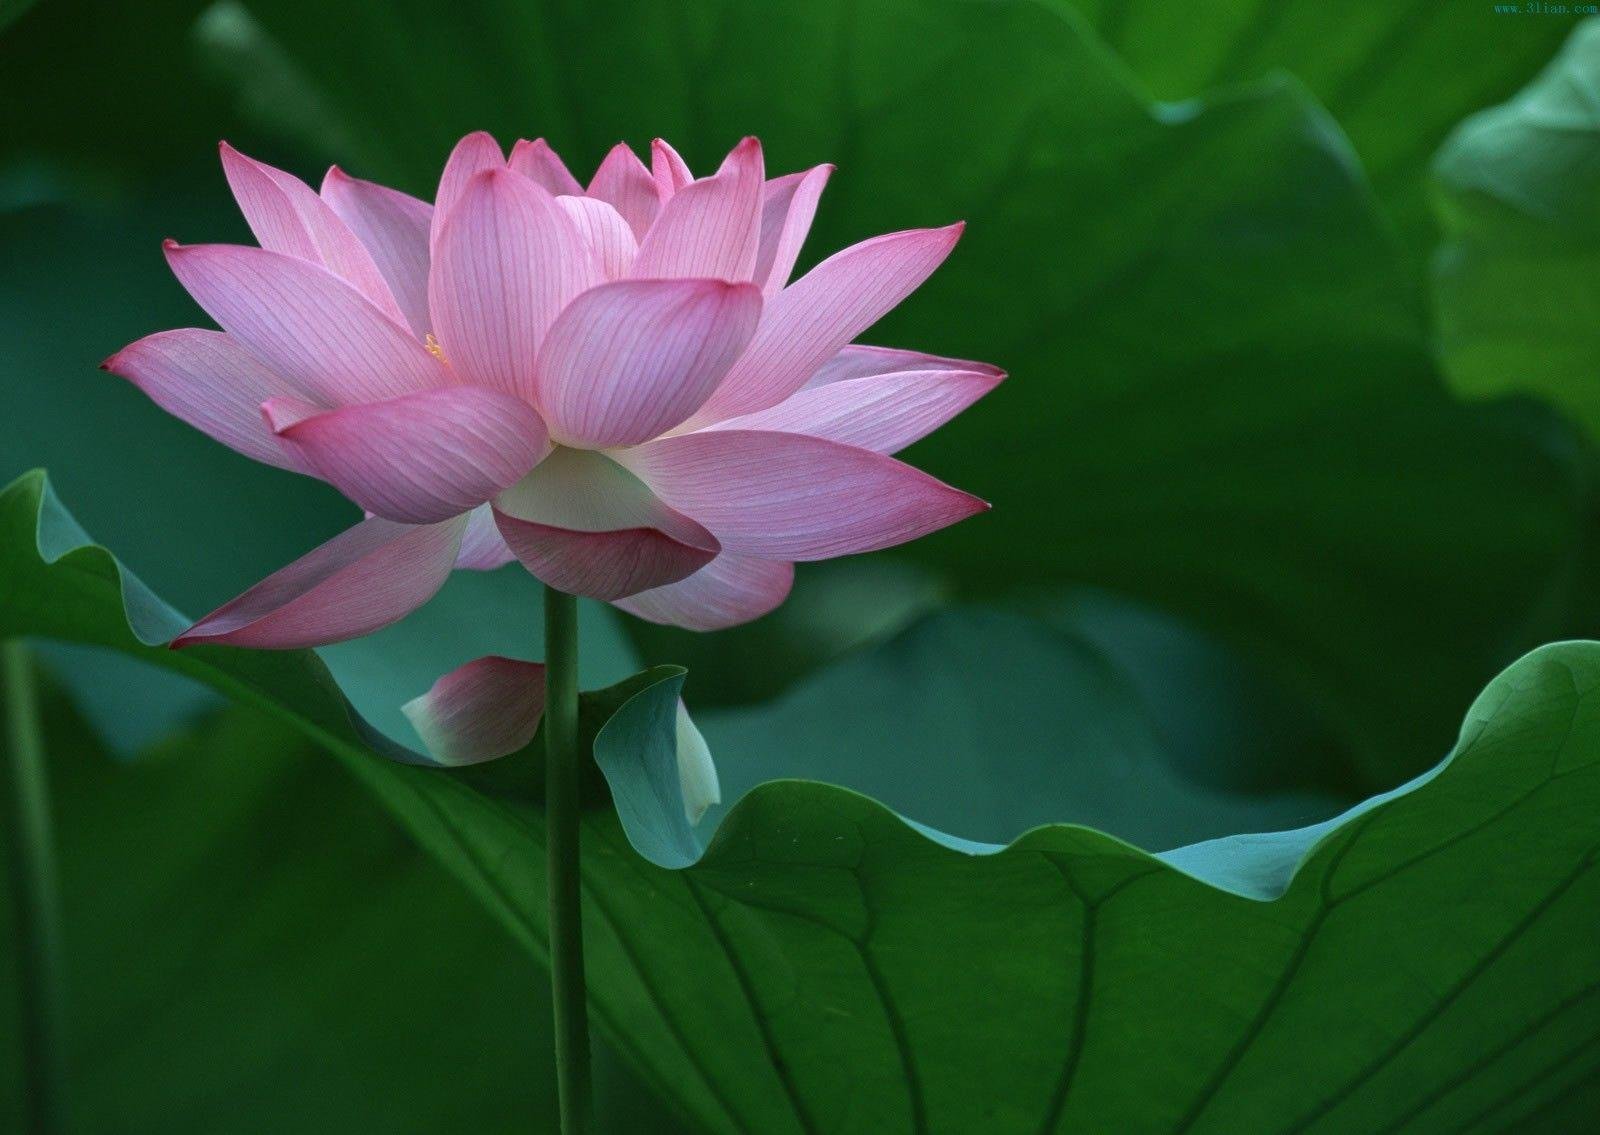 Lotus Flower Wallpapers - Wallpaper Cave